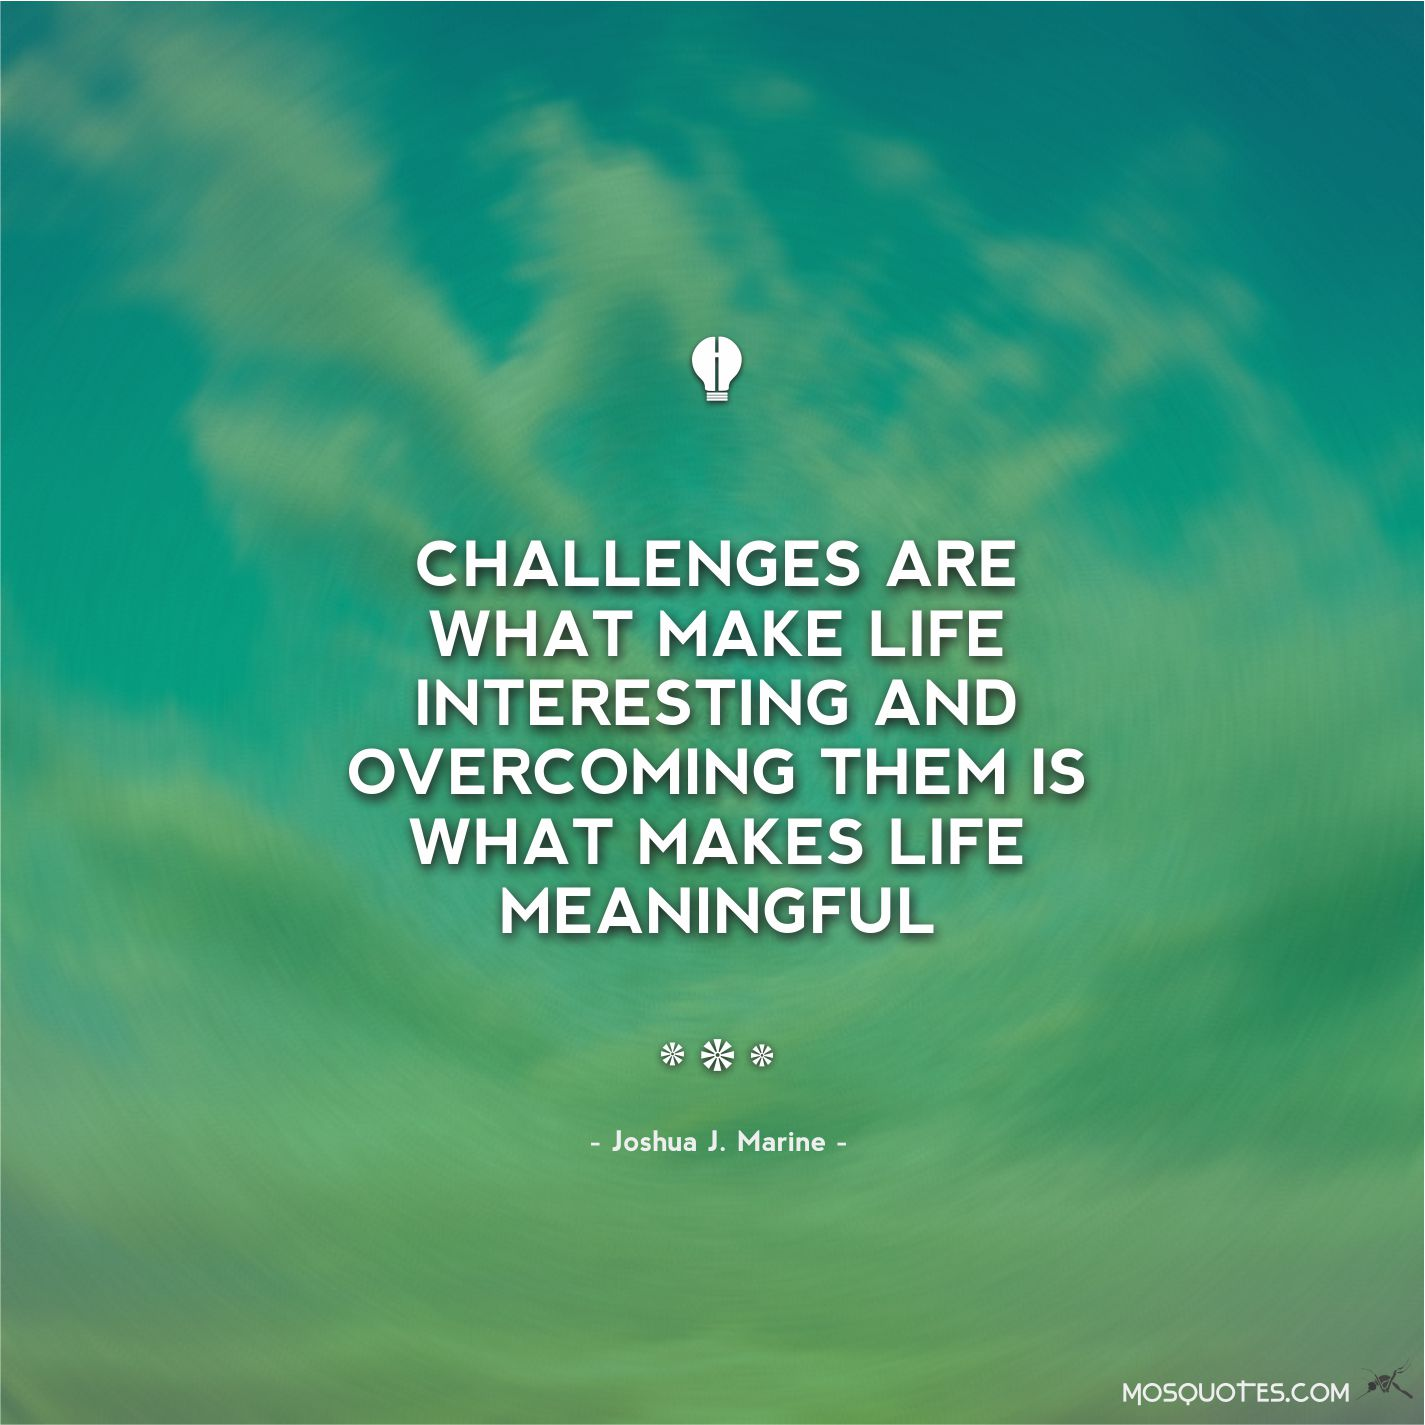 Inspirational Quotes For Overcoming Obstacles: Motivational Quotes To Overcome Challenges. QuotesGram